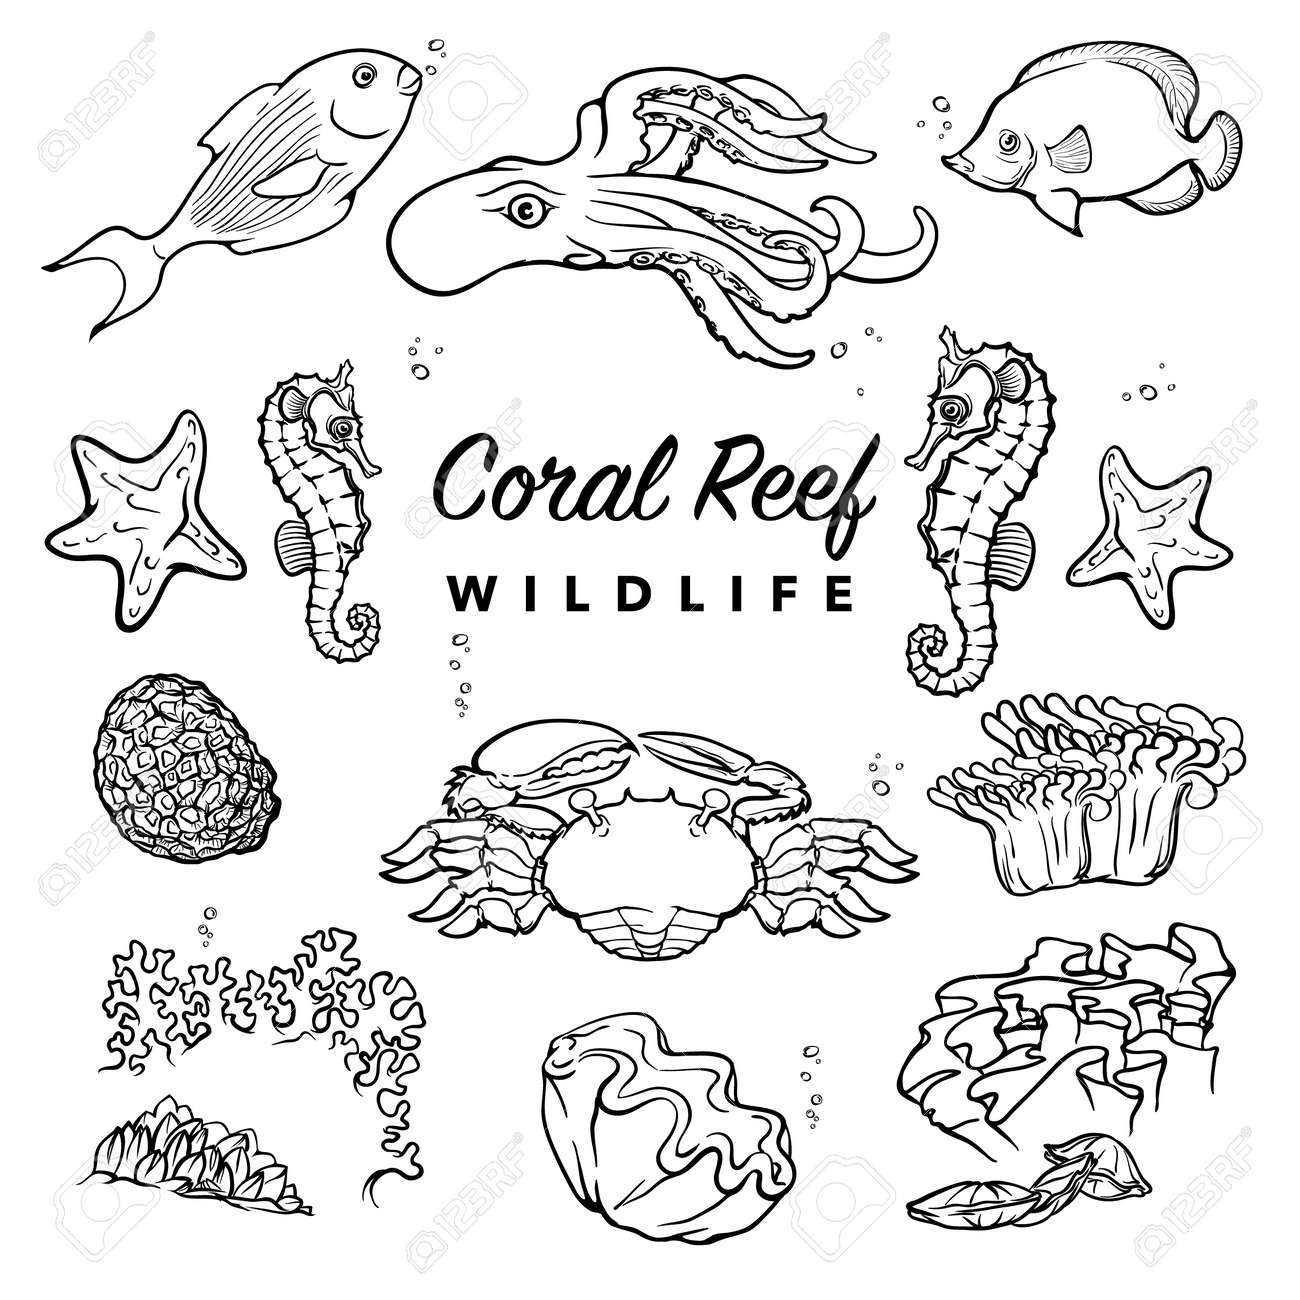 Tropical Coral Reef Inhabitants. Sea Creatures Drawings With White  Silhouettes Isolated On White Background.